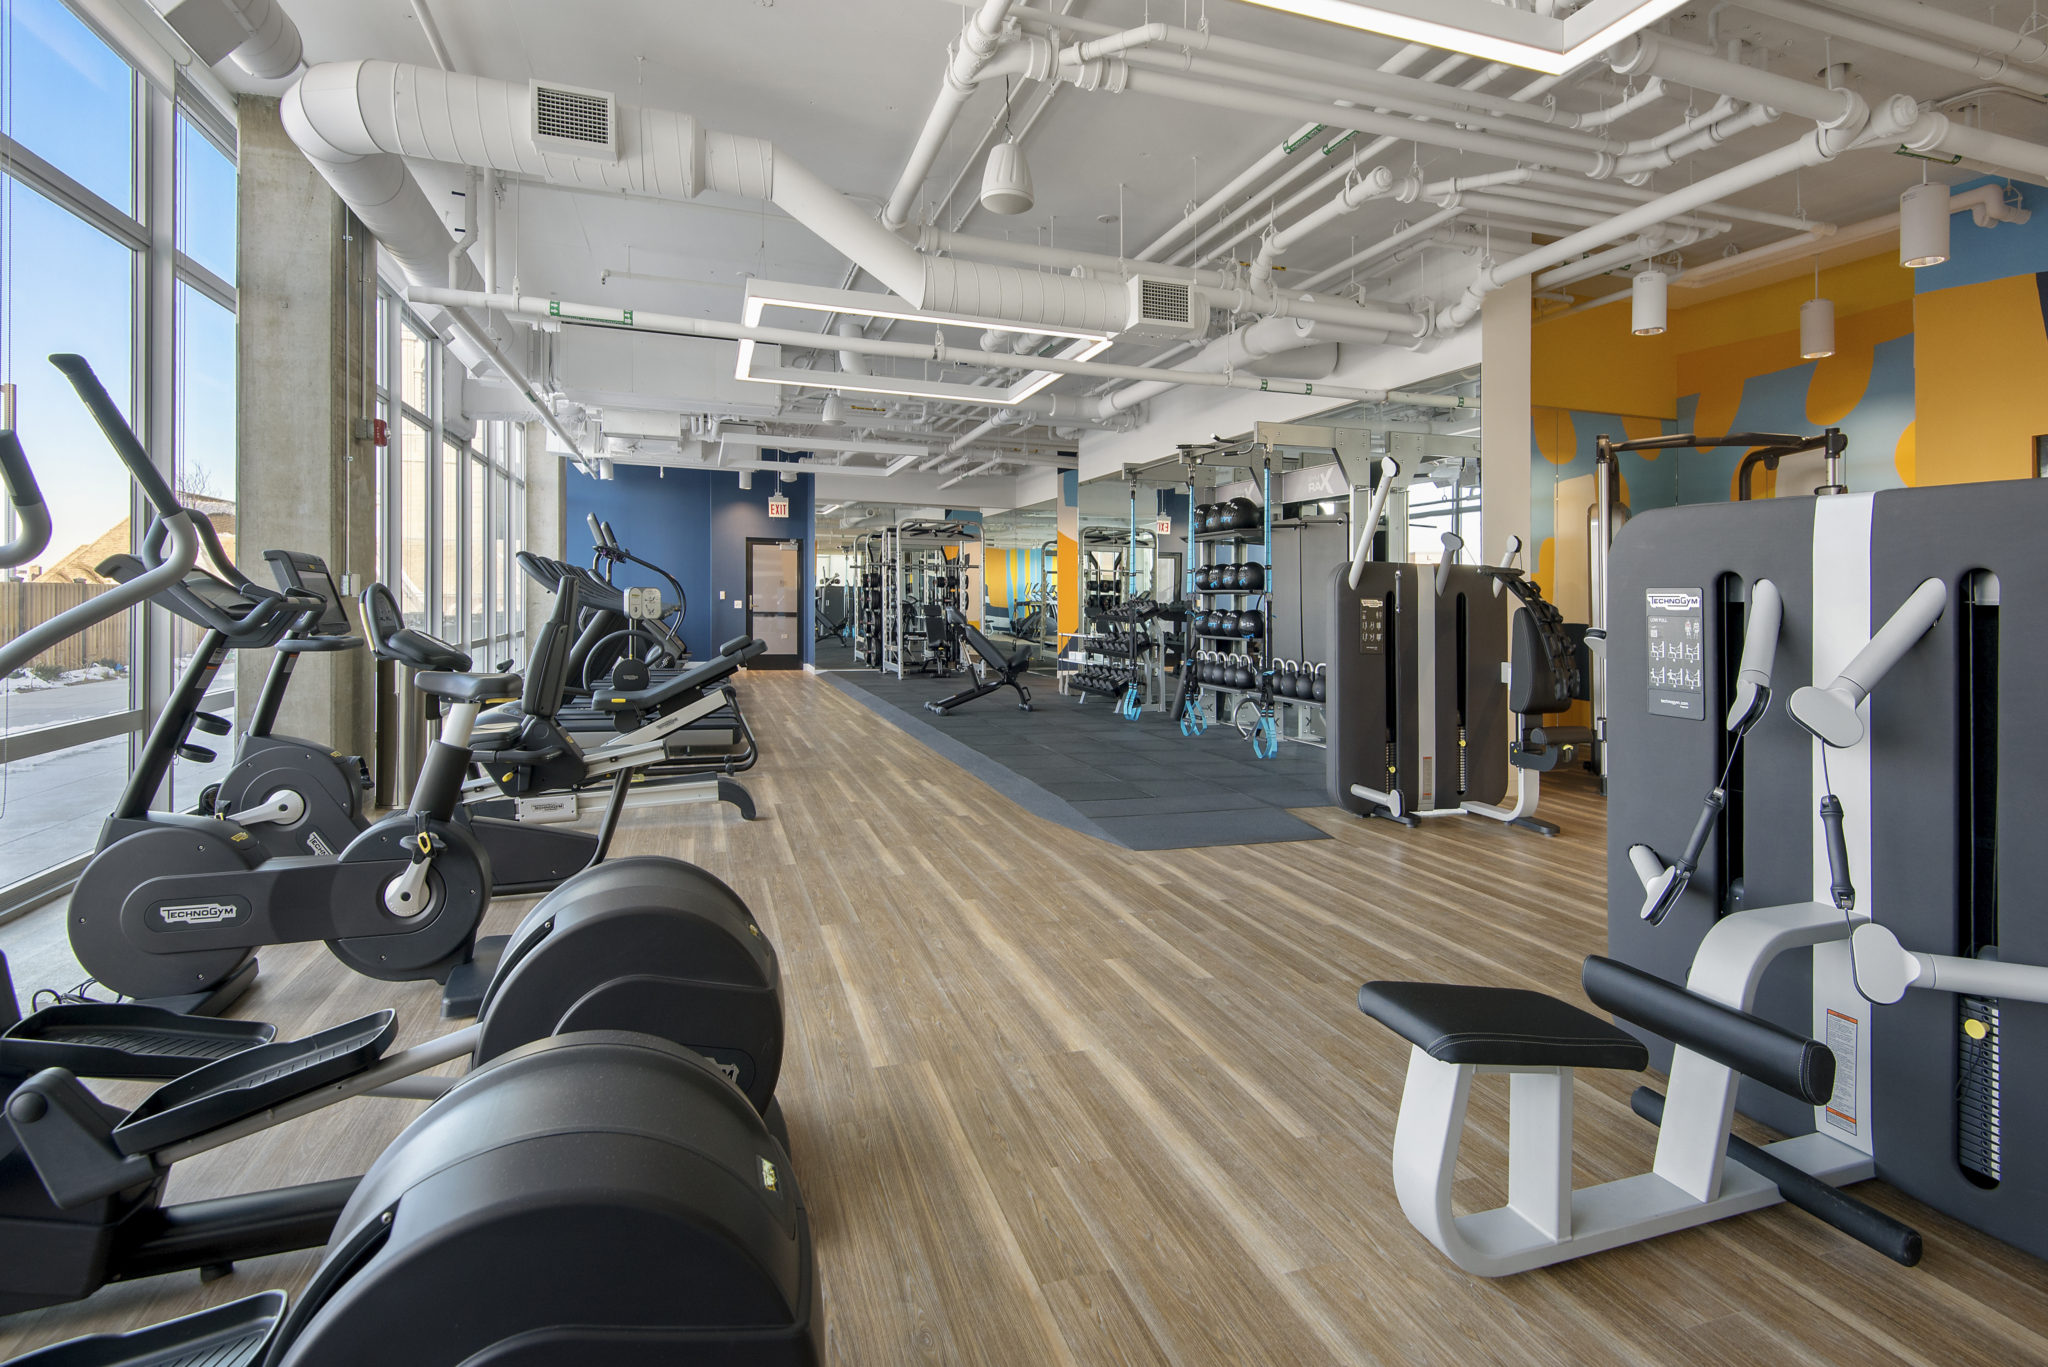 Spoke fitness center